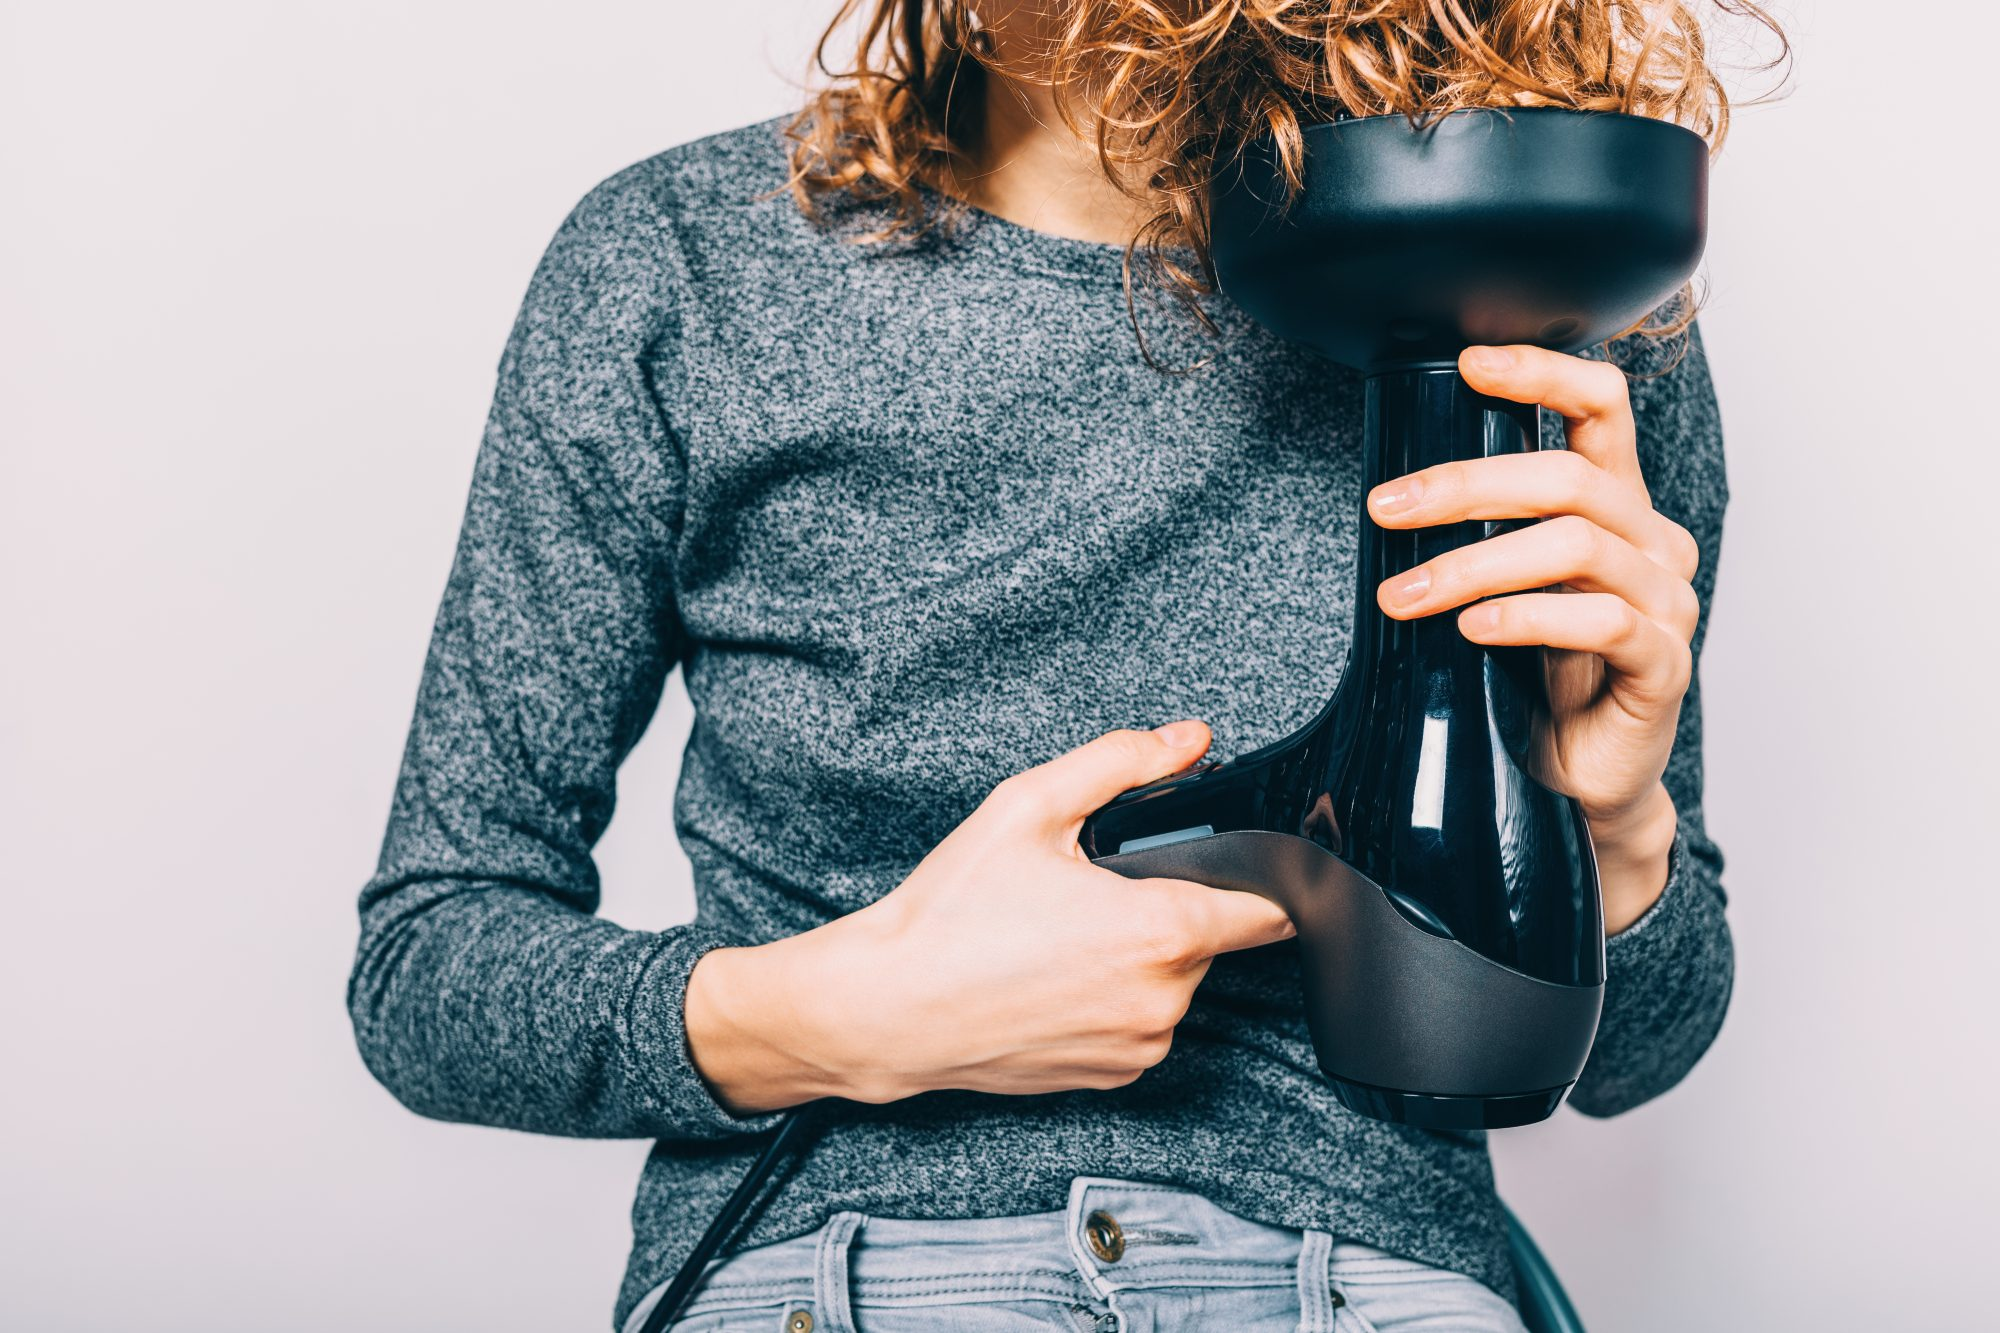 woman blow drying hair with diffuser